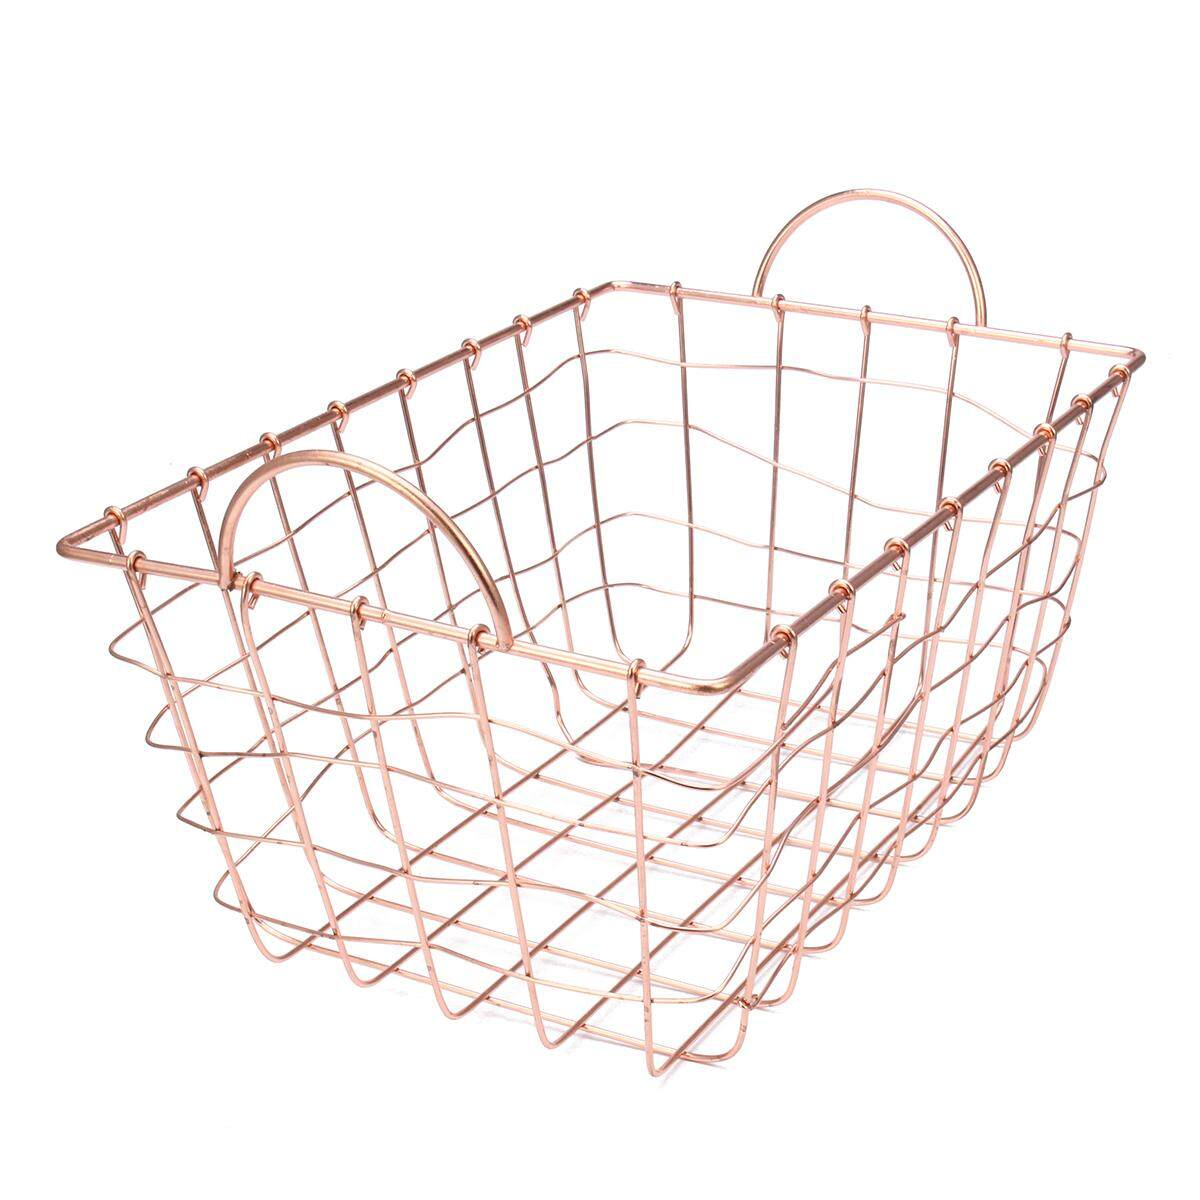 Copper Wire Metal Storage Basket Filing Crate Office Kitchen Living 4 Sizes - intl